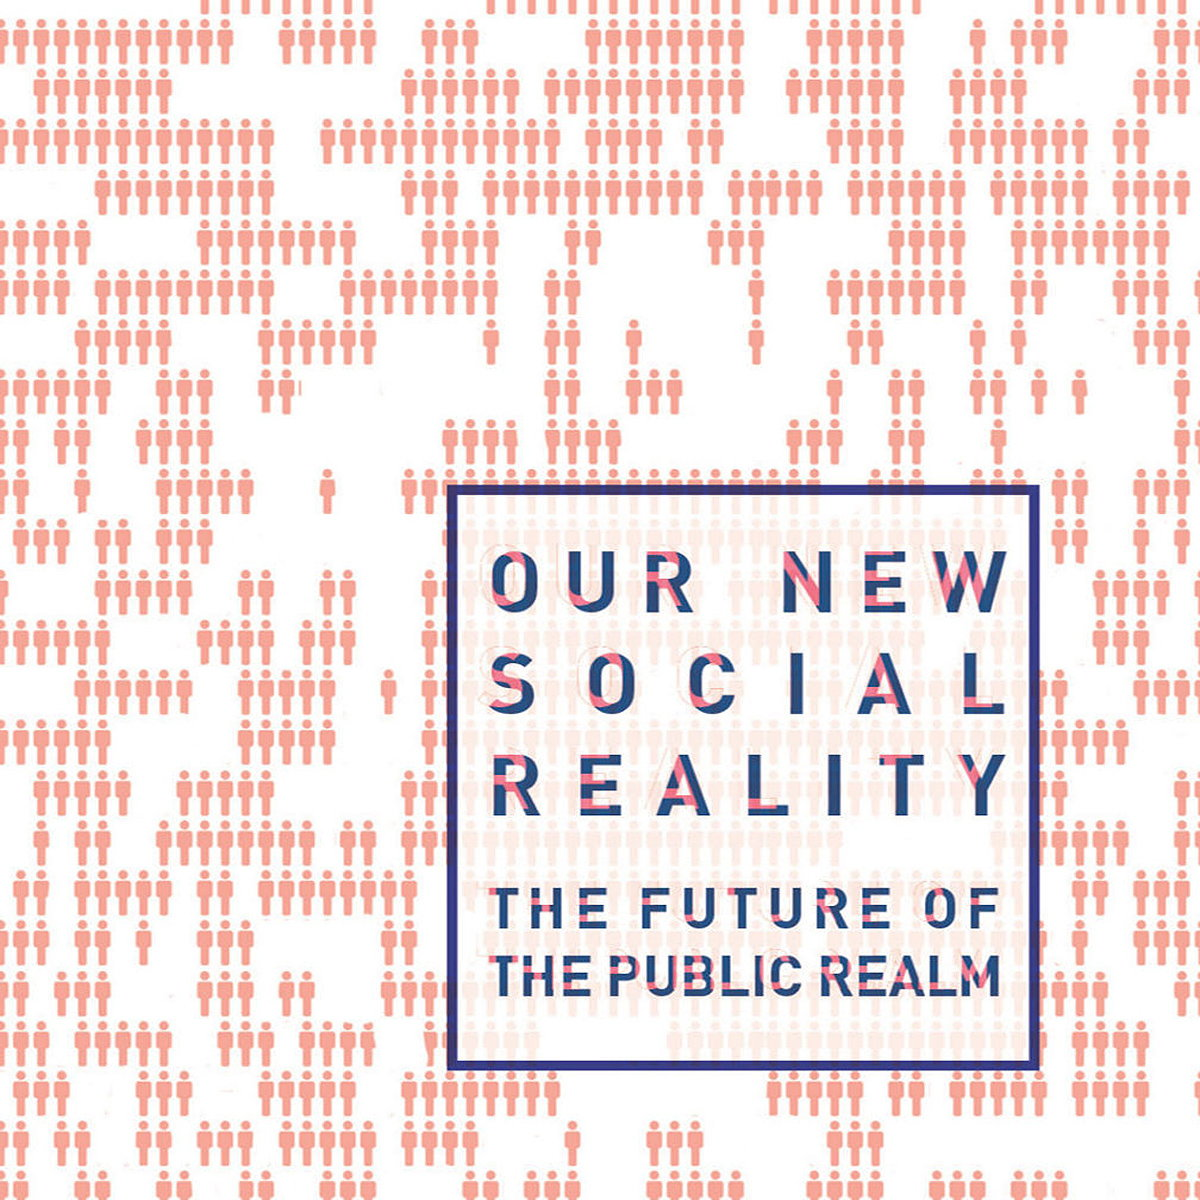 Our New Social Reality - The Future of the Public Realm